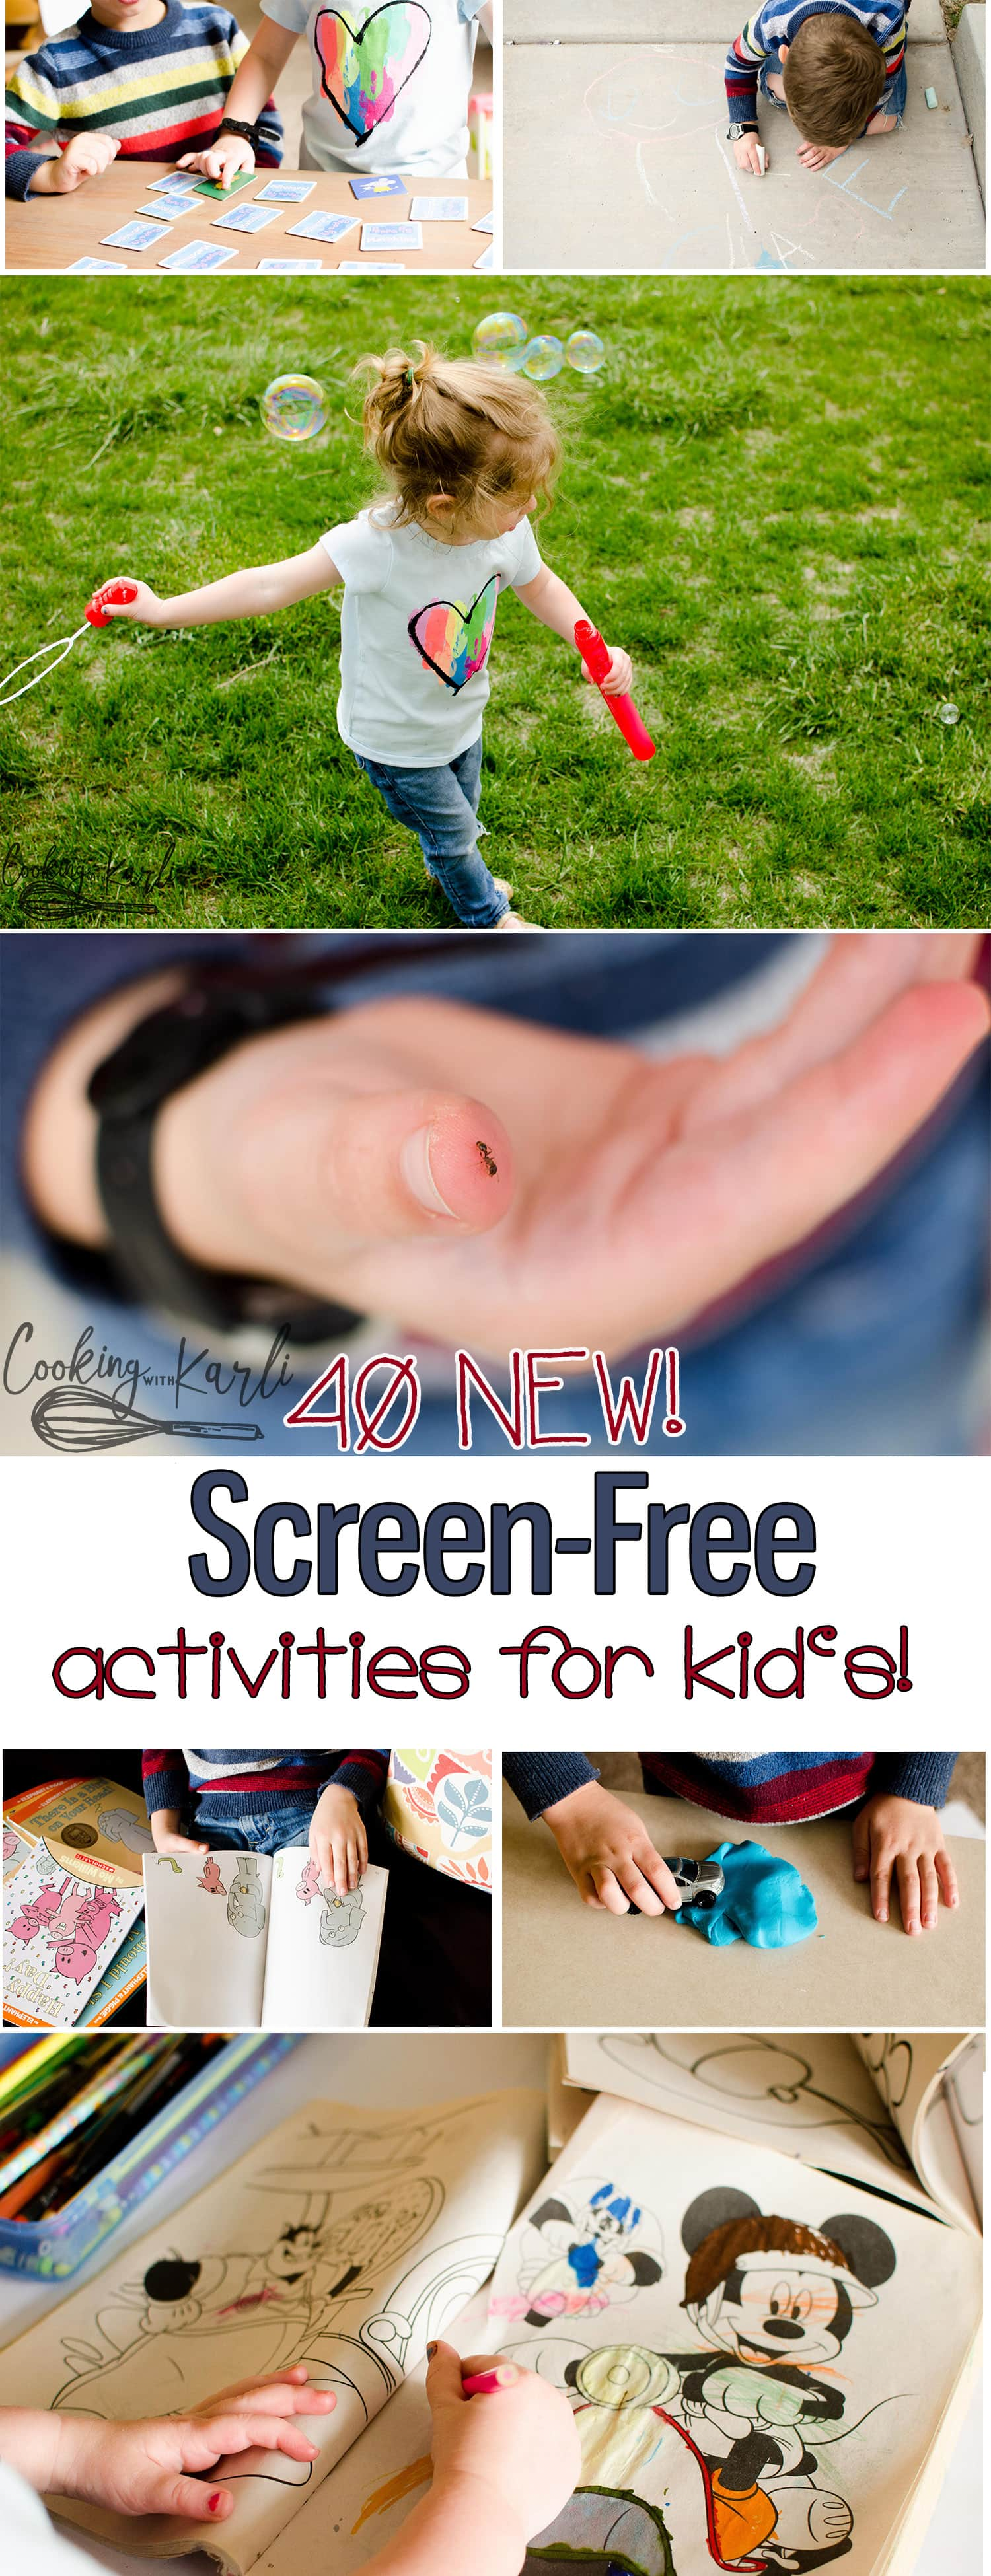 Screen-Free Activities for Kids are a must-have this Summer! Keep your kids occupied, happy, learning and active. These boredom-buster activities will entertain your kid's all summer long! |Cooking with Karli| #kids #activities #bordembuster #screen-free #noscreens #summer #toddler #3yearold #4yearold #5yearold